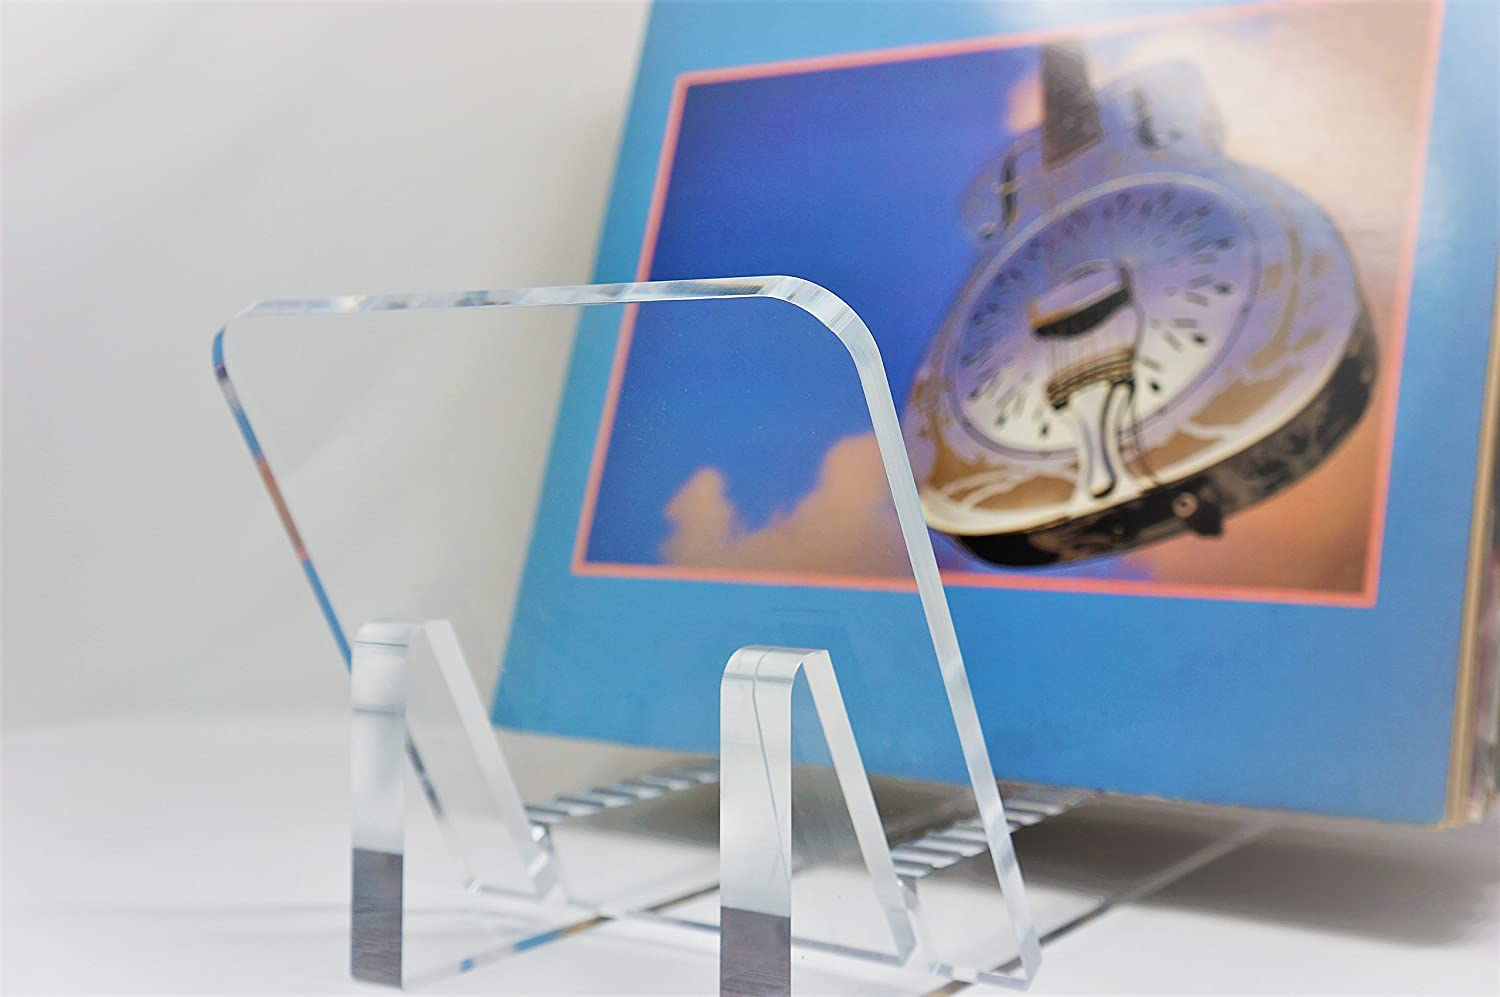 Vinyl Record Album Storage Display Stand and Holder – Modern Minimalist Design – 100 Crystal Clear Acrylic – For LP Record Albums, DVDs, or CDs – Made in USA